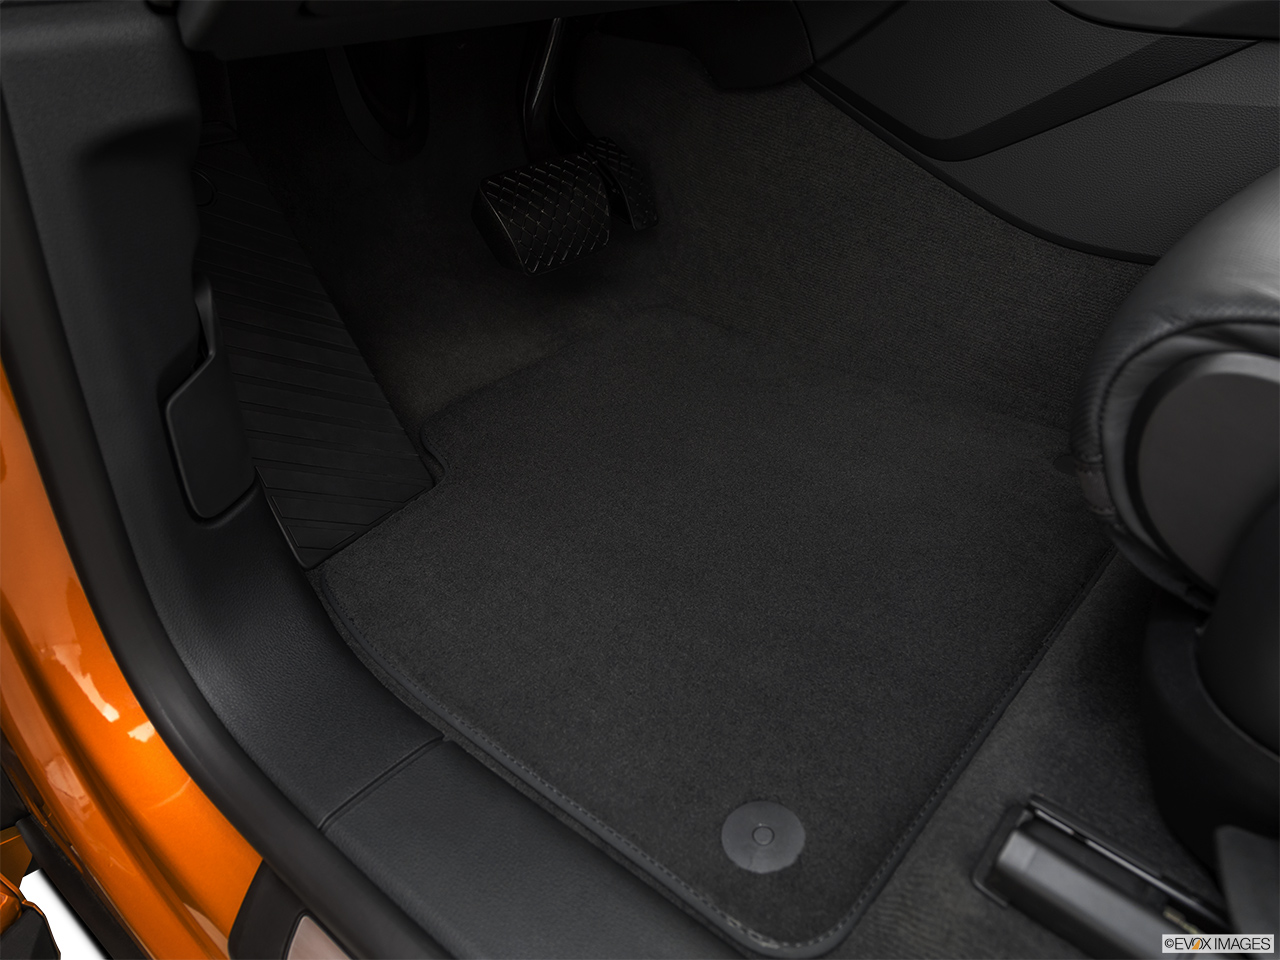 2019 Audi Q8 Prestige 3.0 TFSI Driver's floor mat and pedals. Mid-seat level from outside looking in.